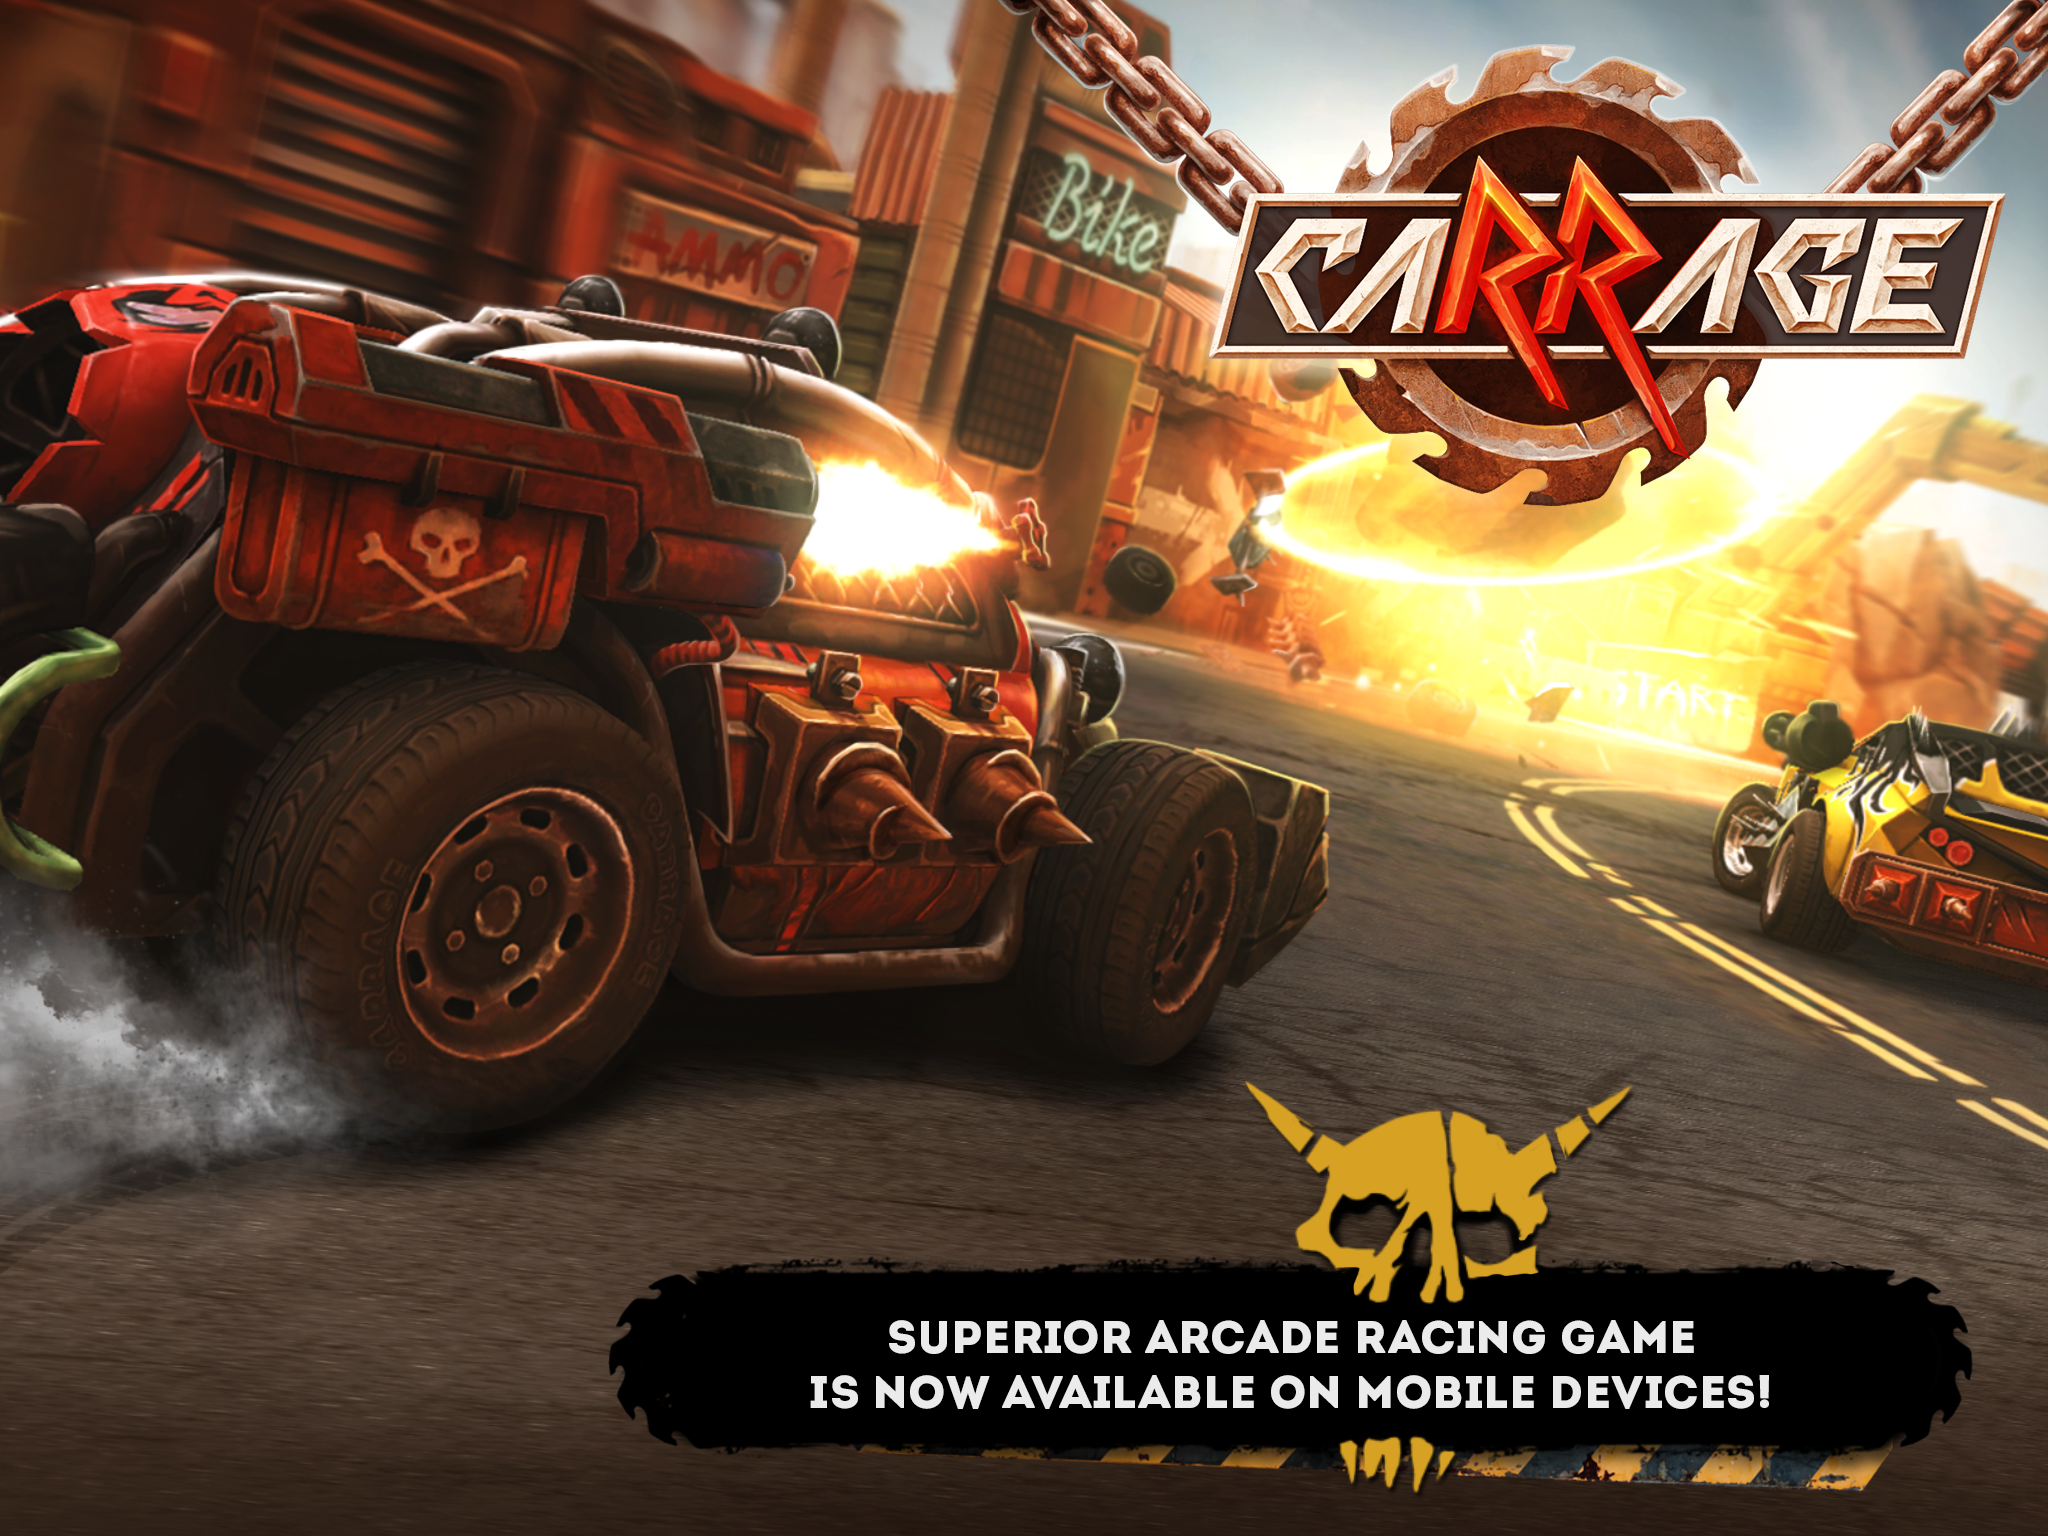 Get into Mad Max-style racing in caRRage - Wheels of War